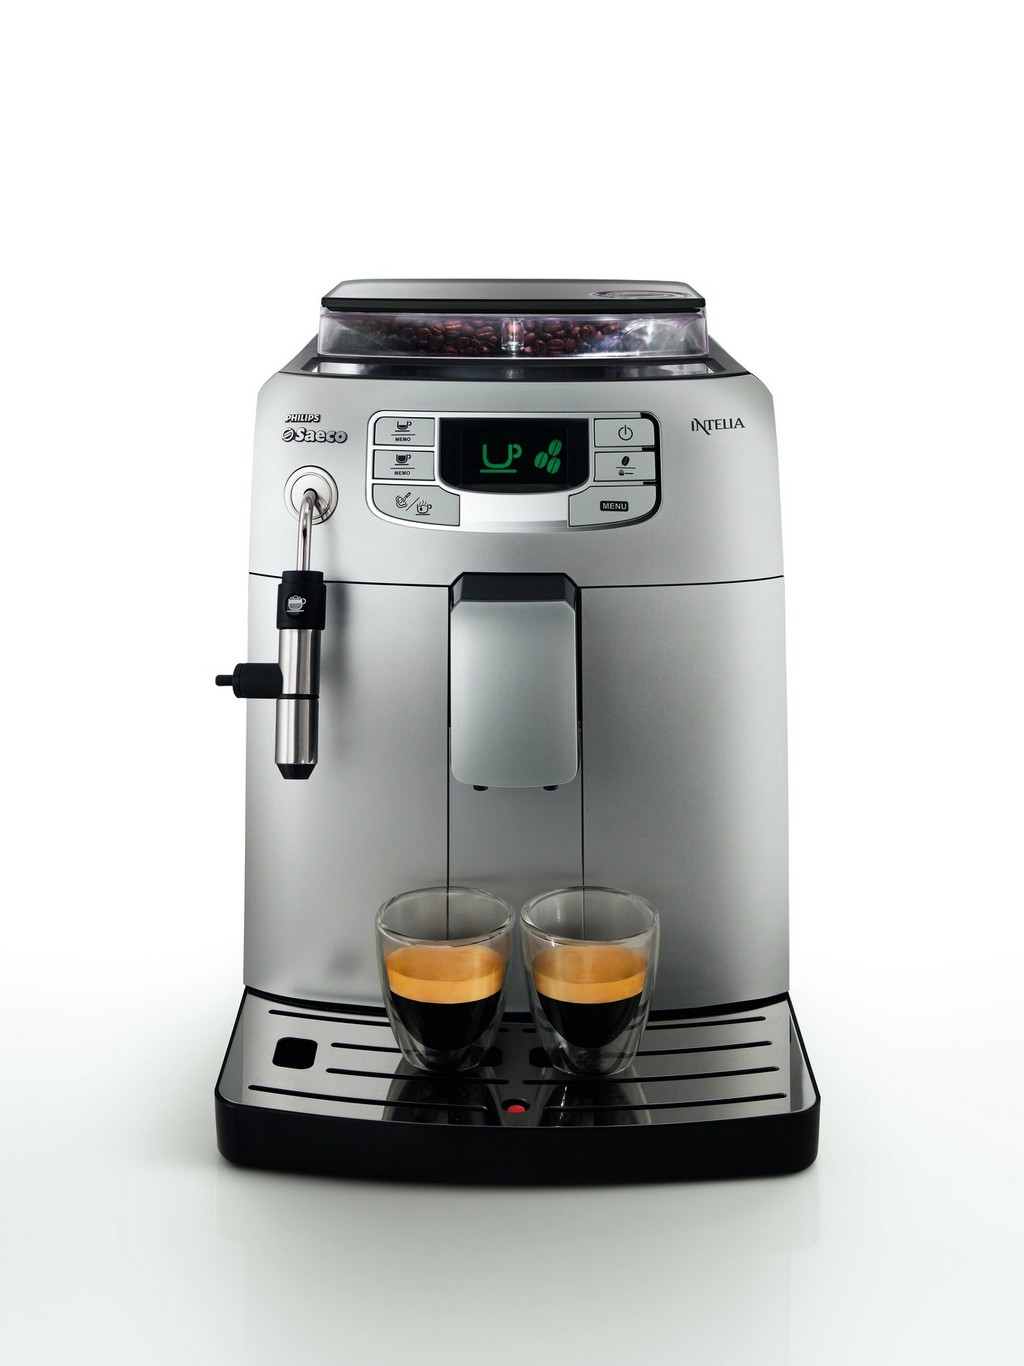 buy espresso maker, coffee and espresso machine, mr coffee espresso machine